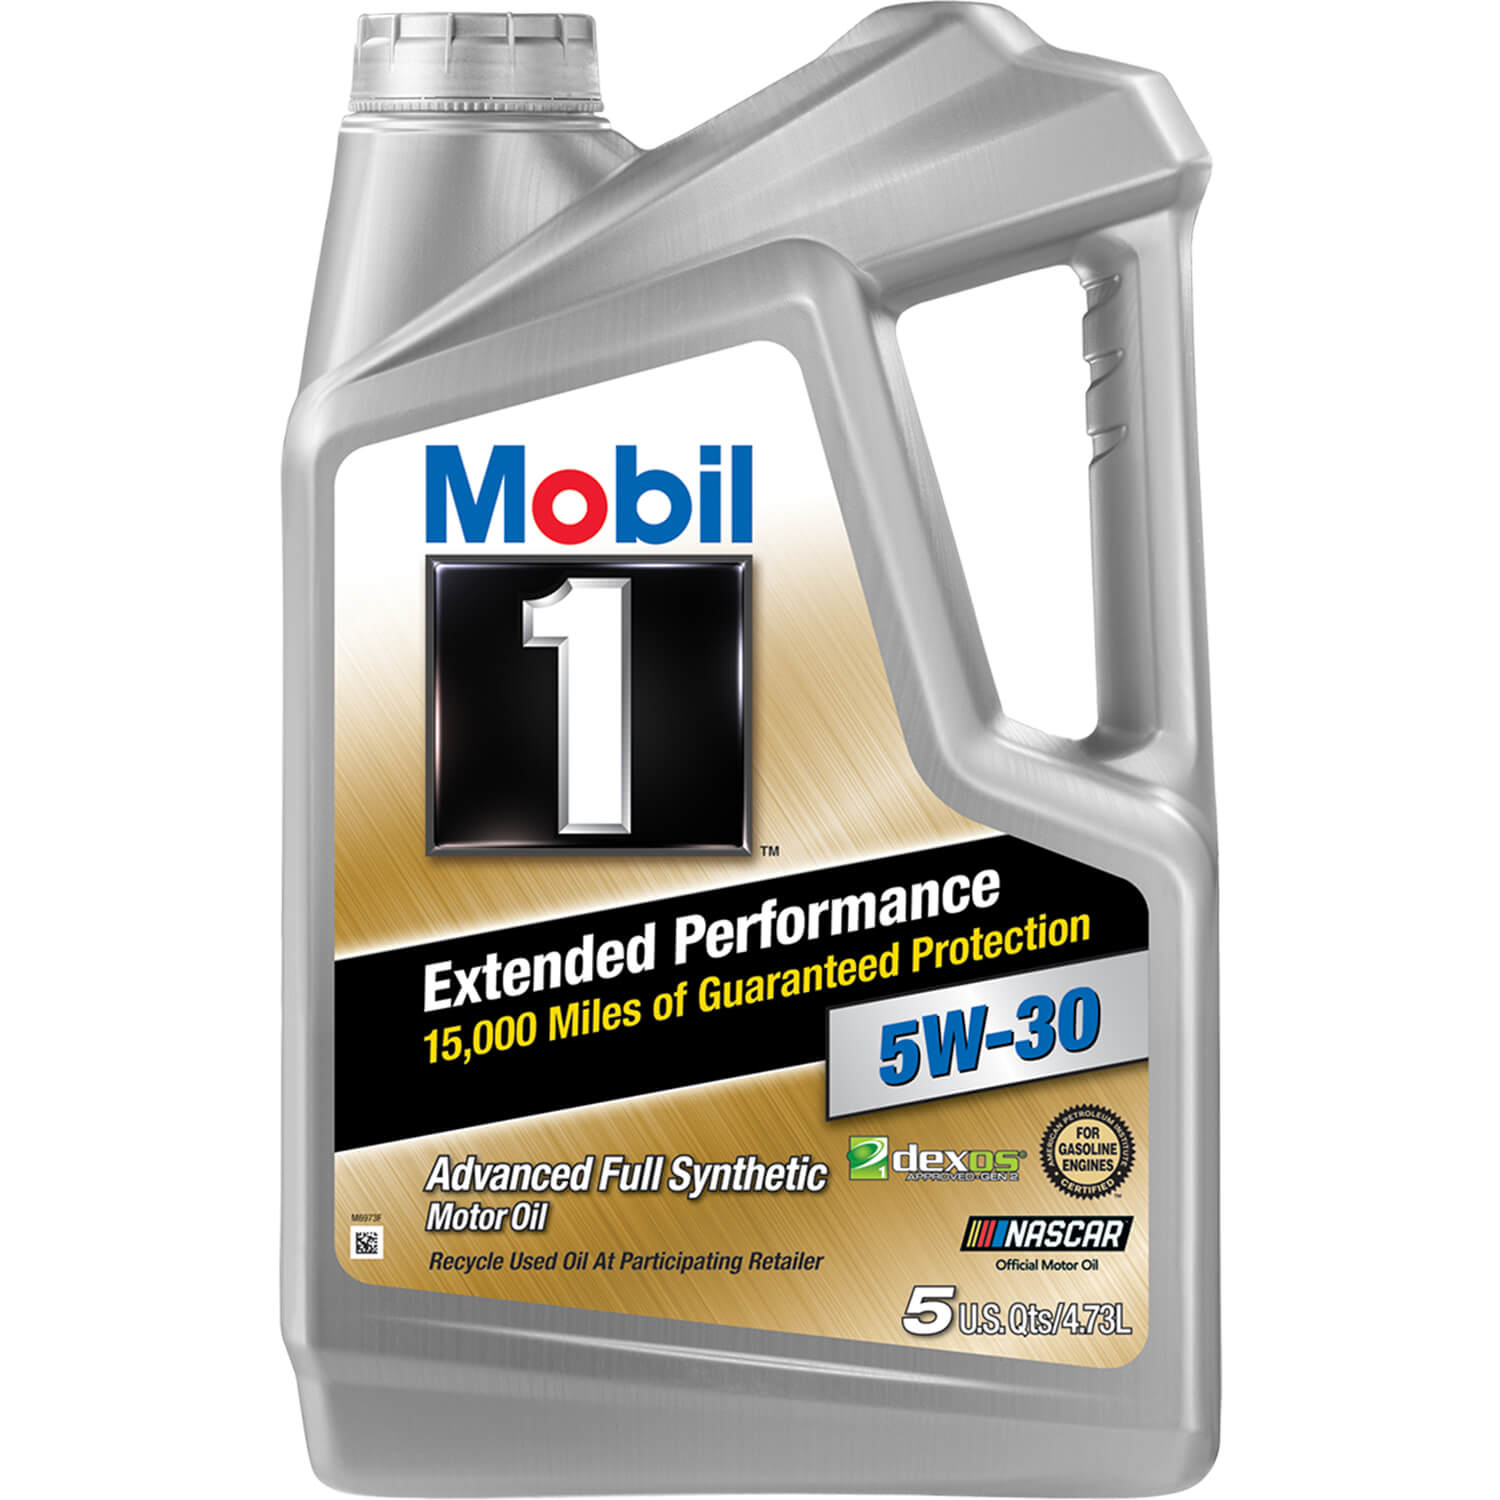 Mobil 5w-30 Extended perfomance